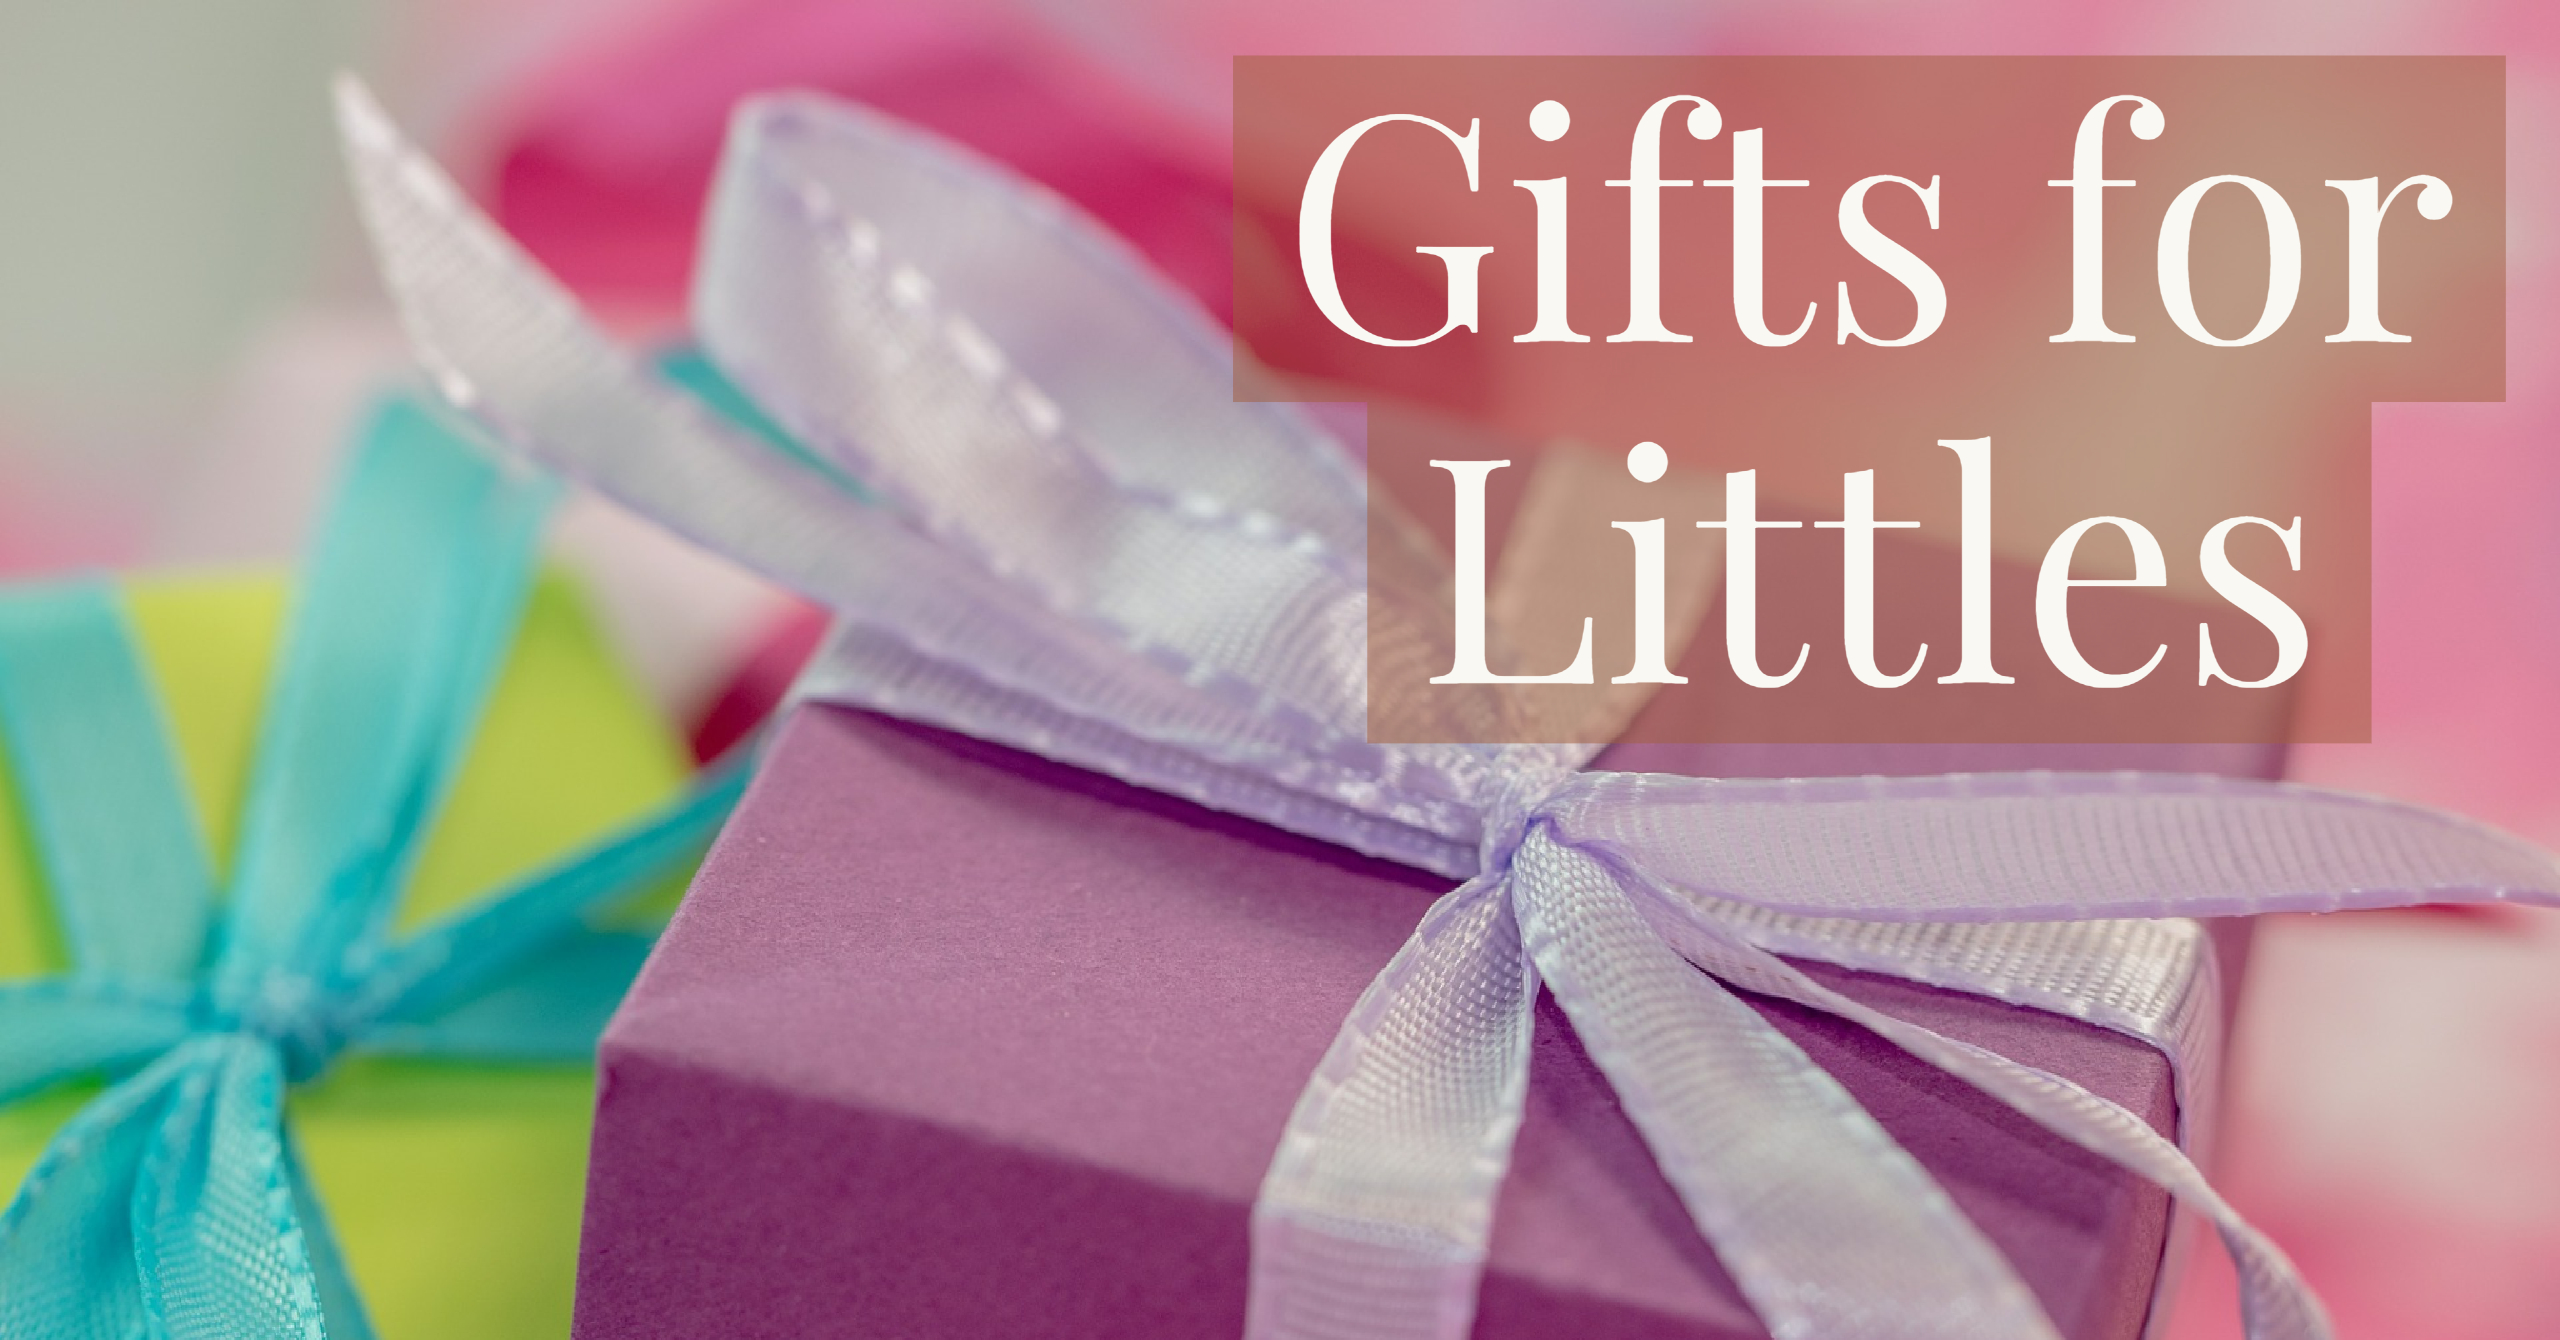 Gifts for Littles